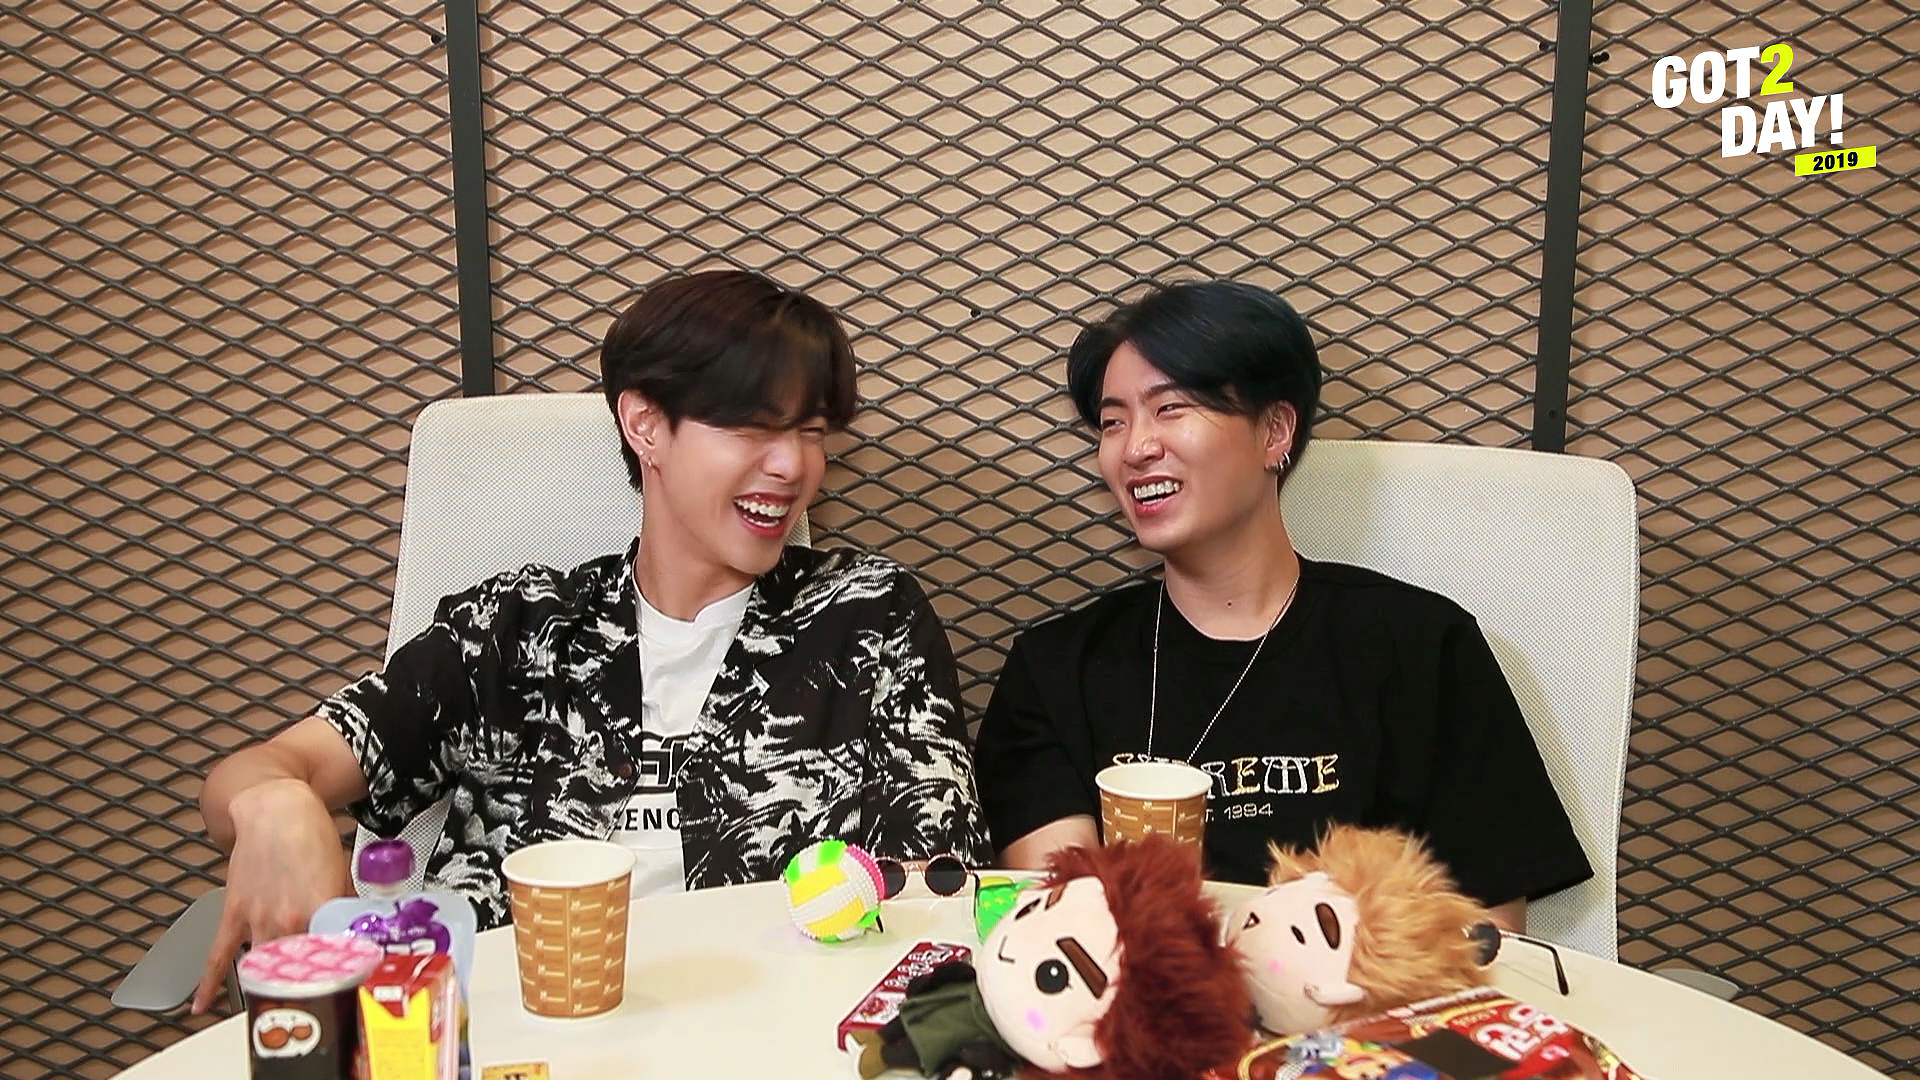 [GOT2DAY 2019] 14. Mark & Youngjae